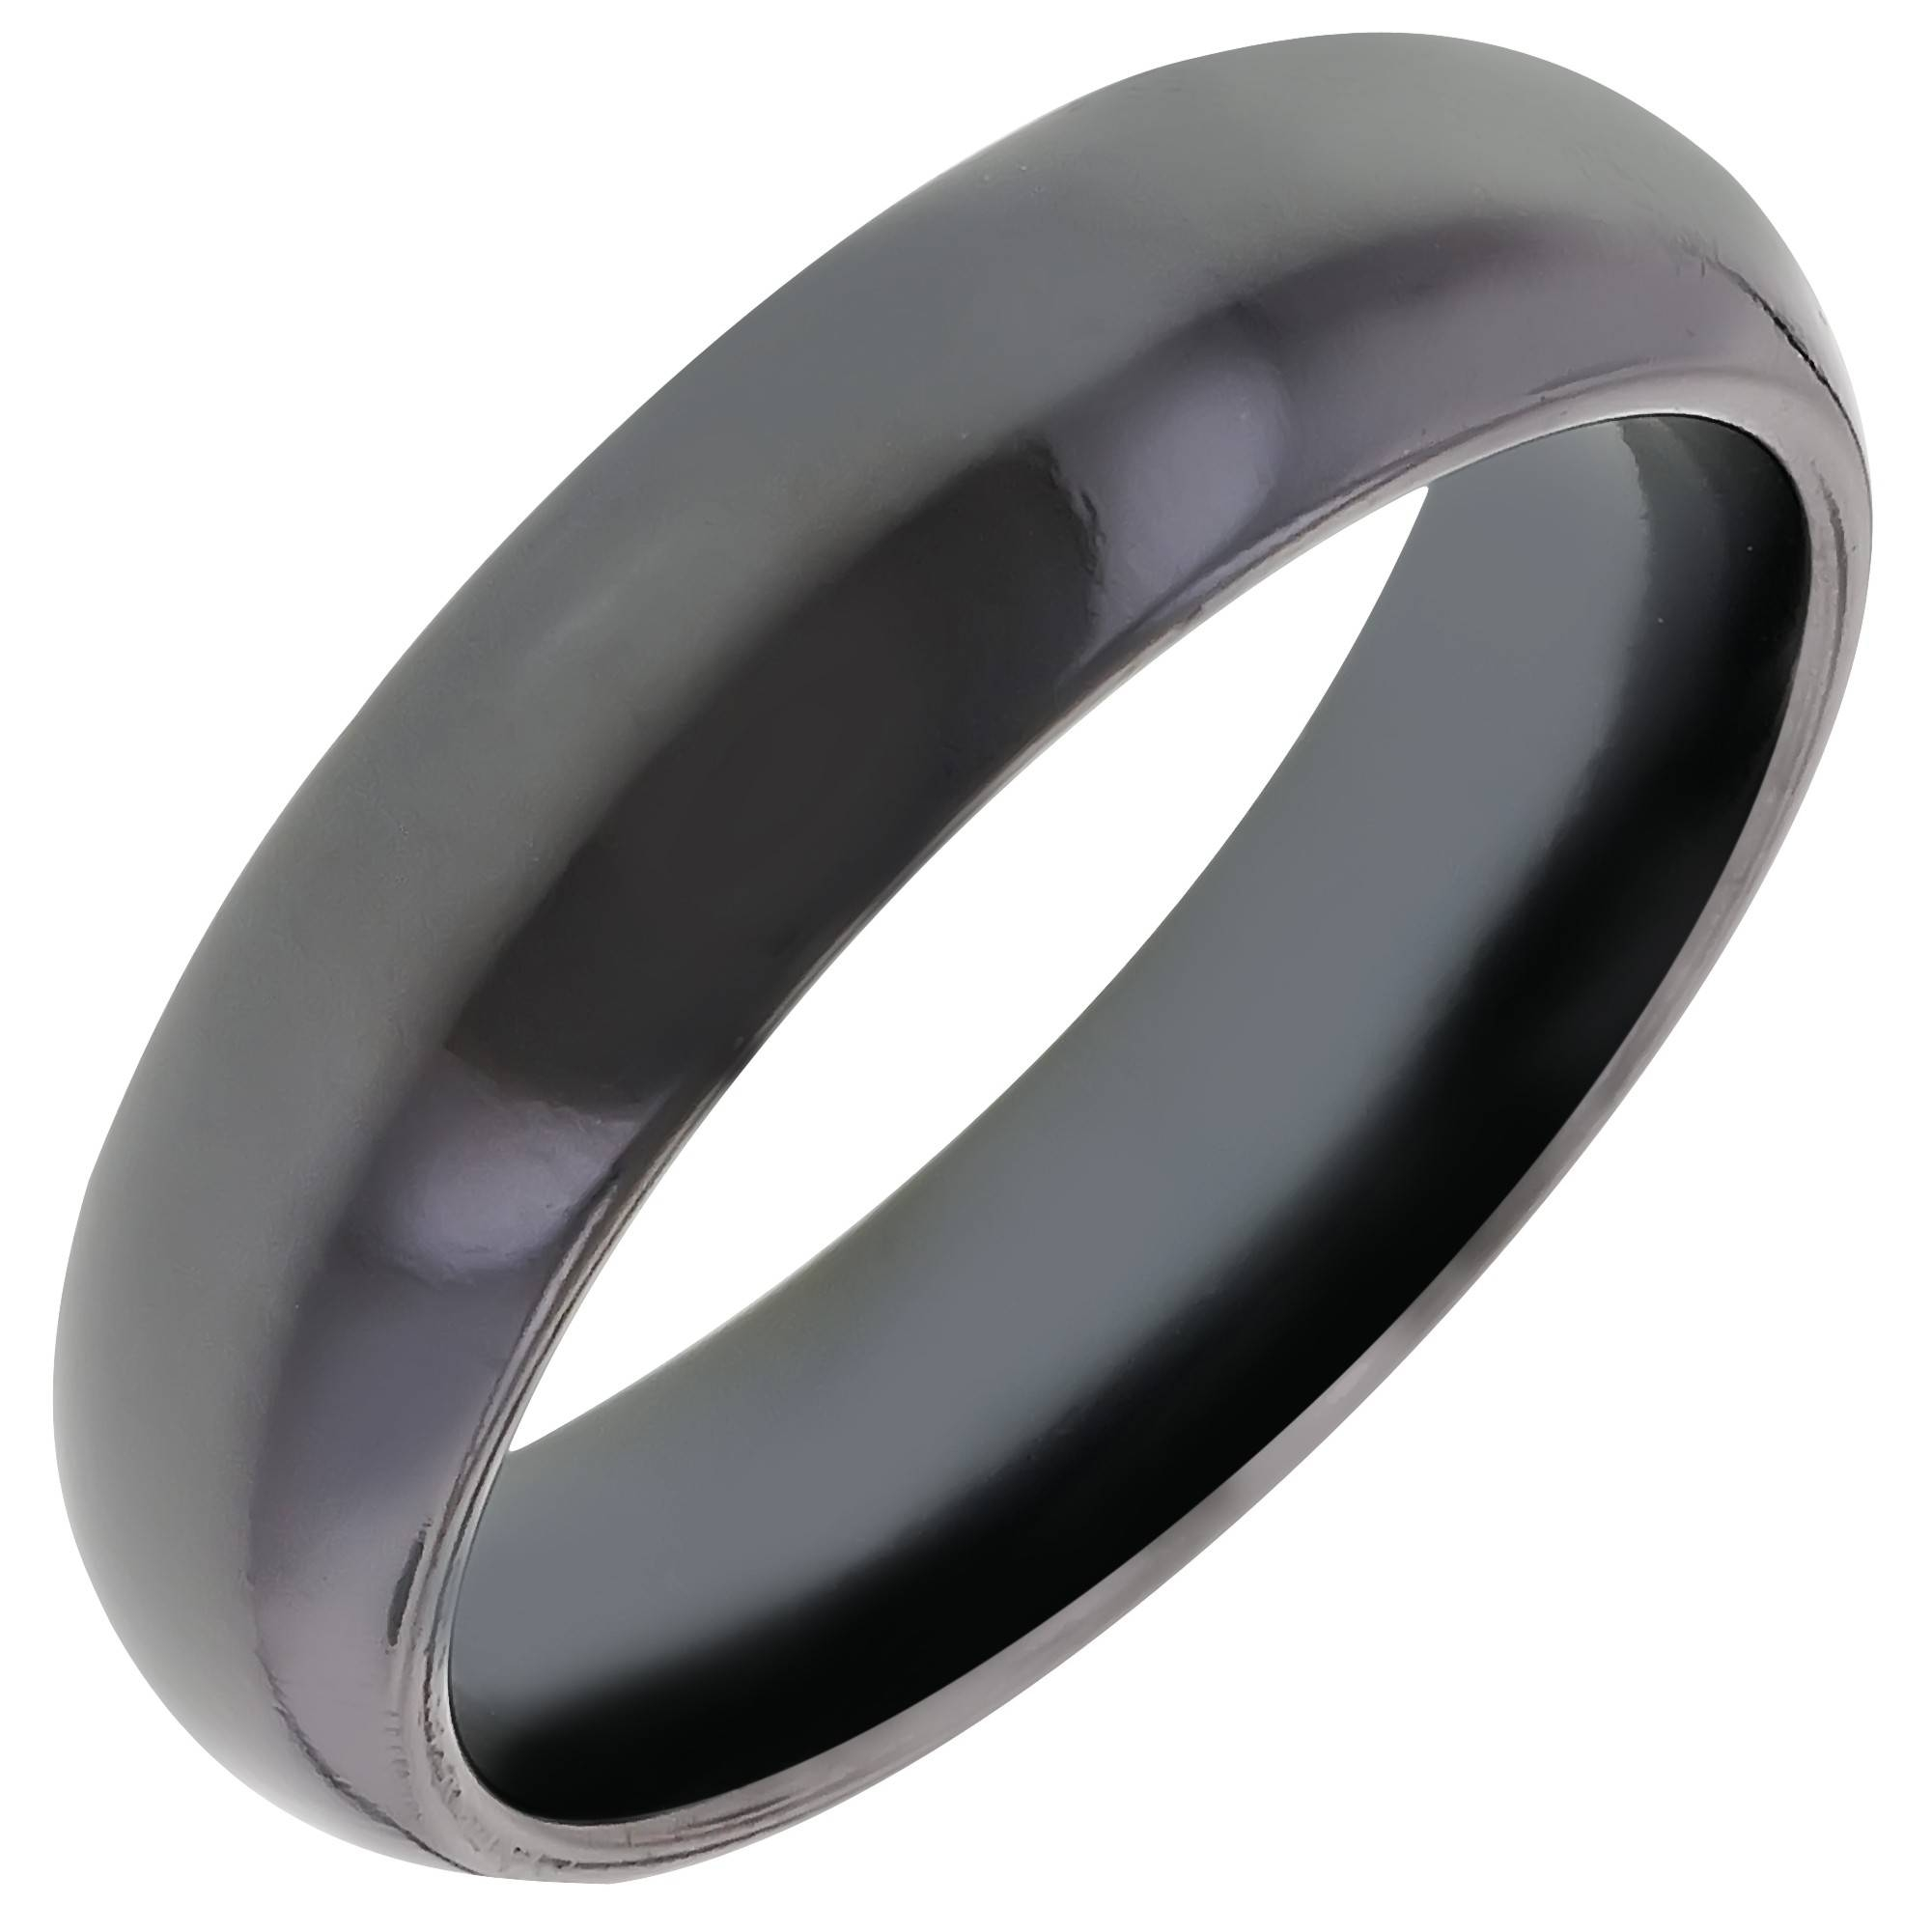 Mens Comfort Fit Wedding Band In Black Titanium (6Mm) Intended For Titanium Wedding Bands (View 5 of 15)